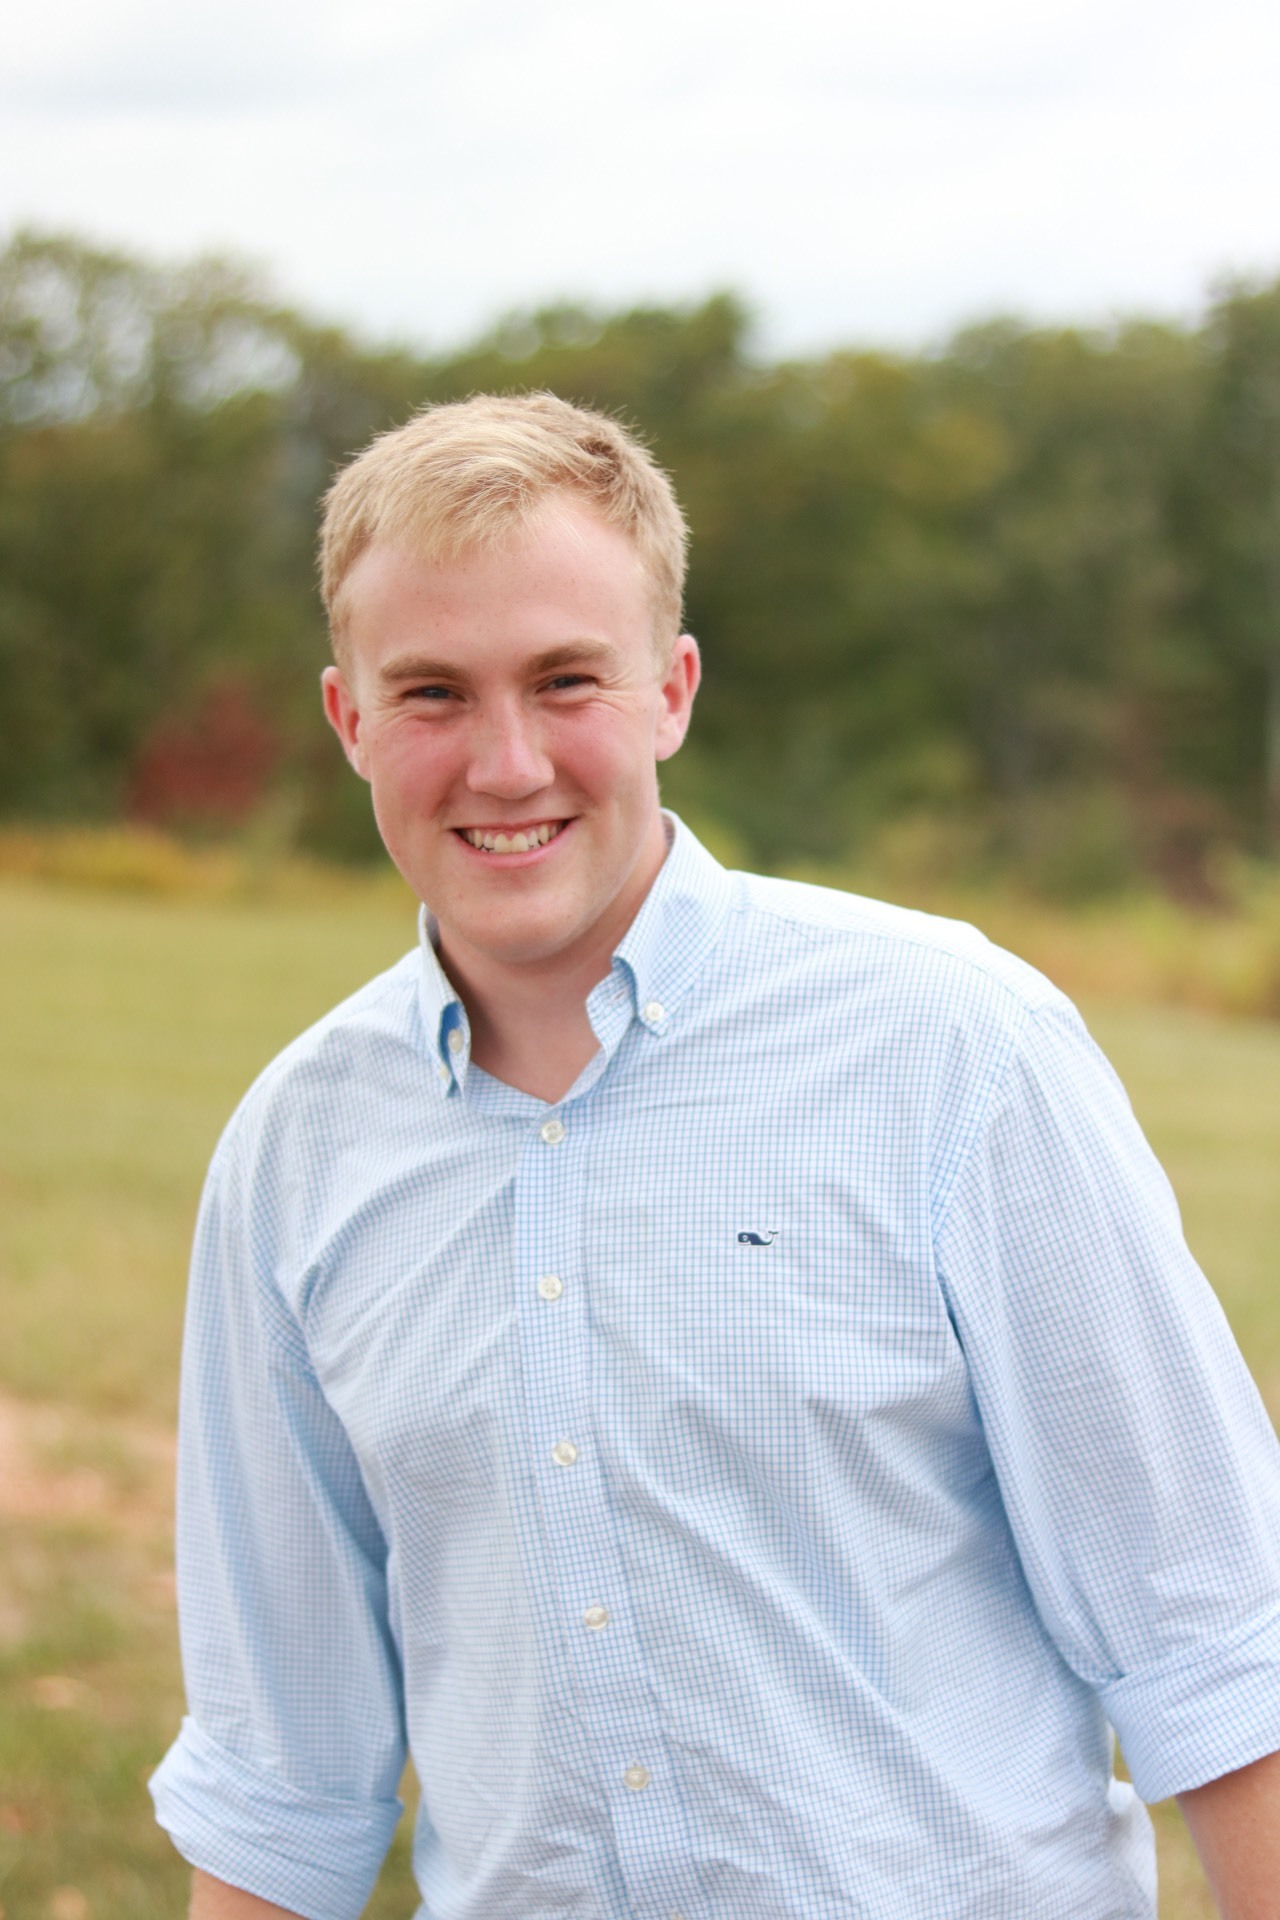 Garrett Briggs   Winston-Salem, NC  Virginia Military Institute  Employer: Wake Forest Institute for Regenerative Medicine  Church: First Presbyterian  While at VMI I chose to fill my time with different extracurricular activities including being an EMT for both the school and the city. I believe that these experiences and skills made me more calm, patient, and confident in a crisis. They also allowed me to experience working in and around the community I lived in. These situations also allowed me to practice being calm in stressful environments and the confidence to make decisions in those situations.